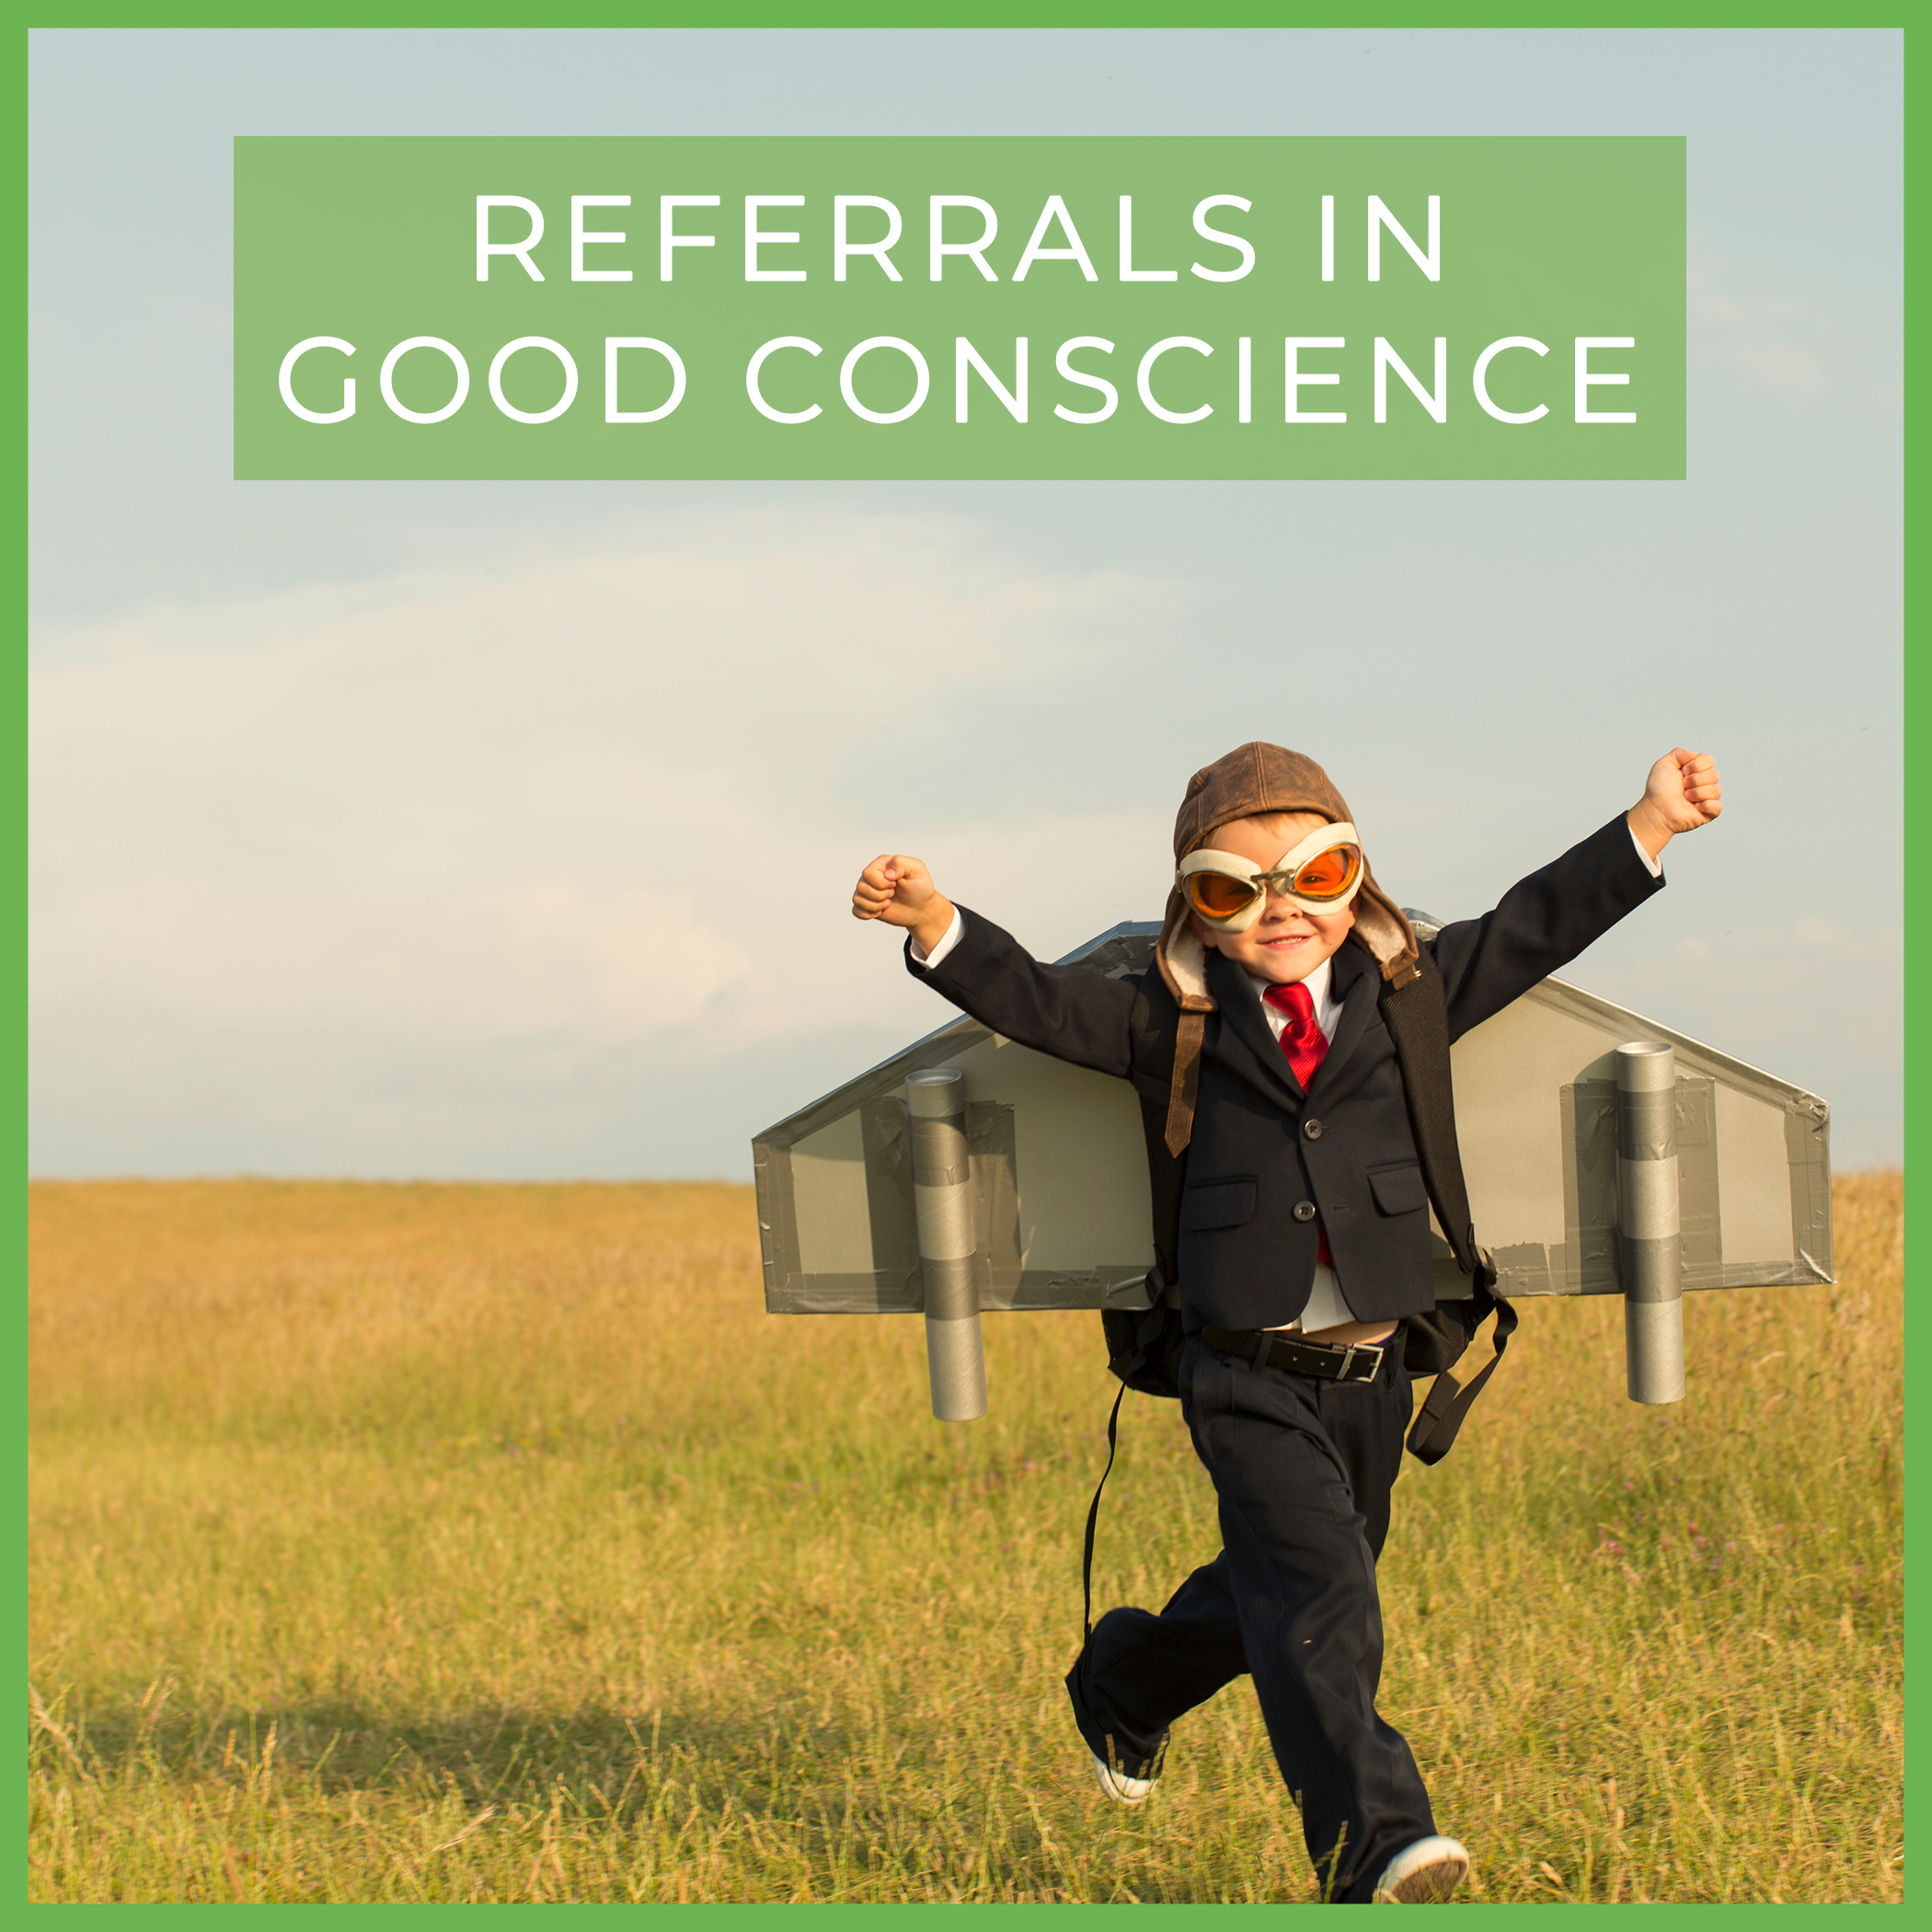 referrals in good conscience.png